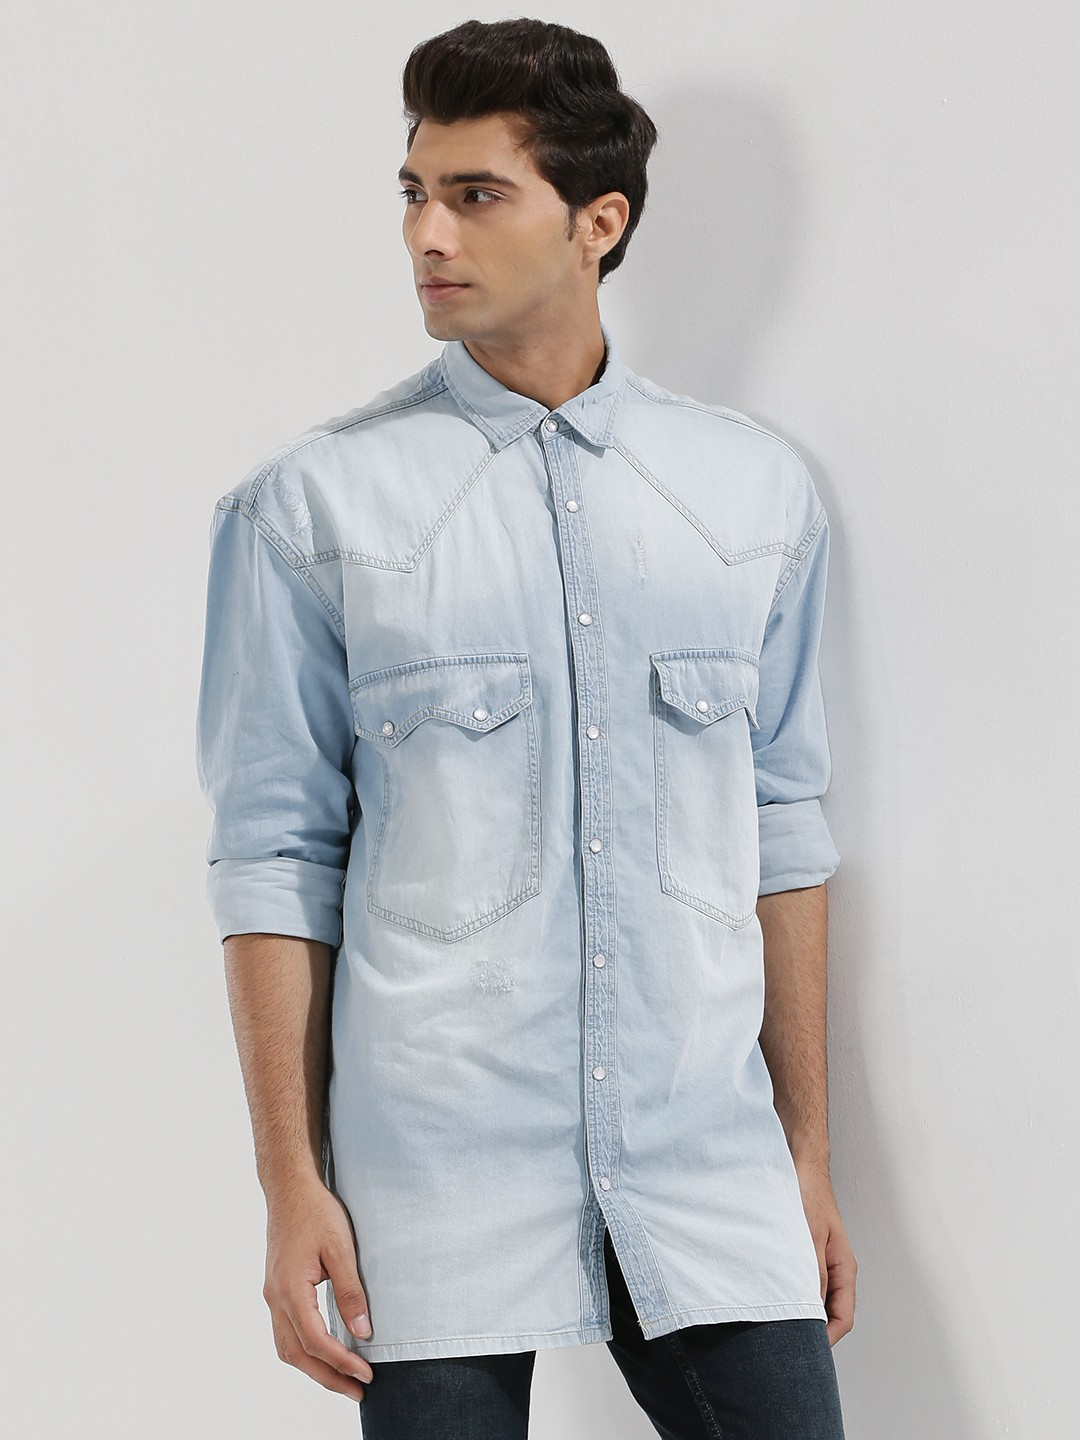 Adamo London Light blue wash Oversized Longline Denim Shirt 1